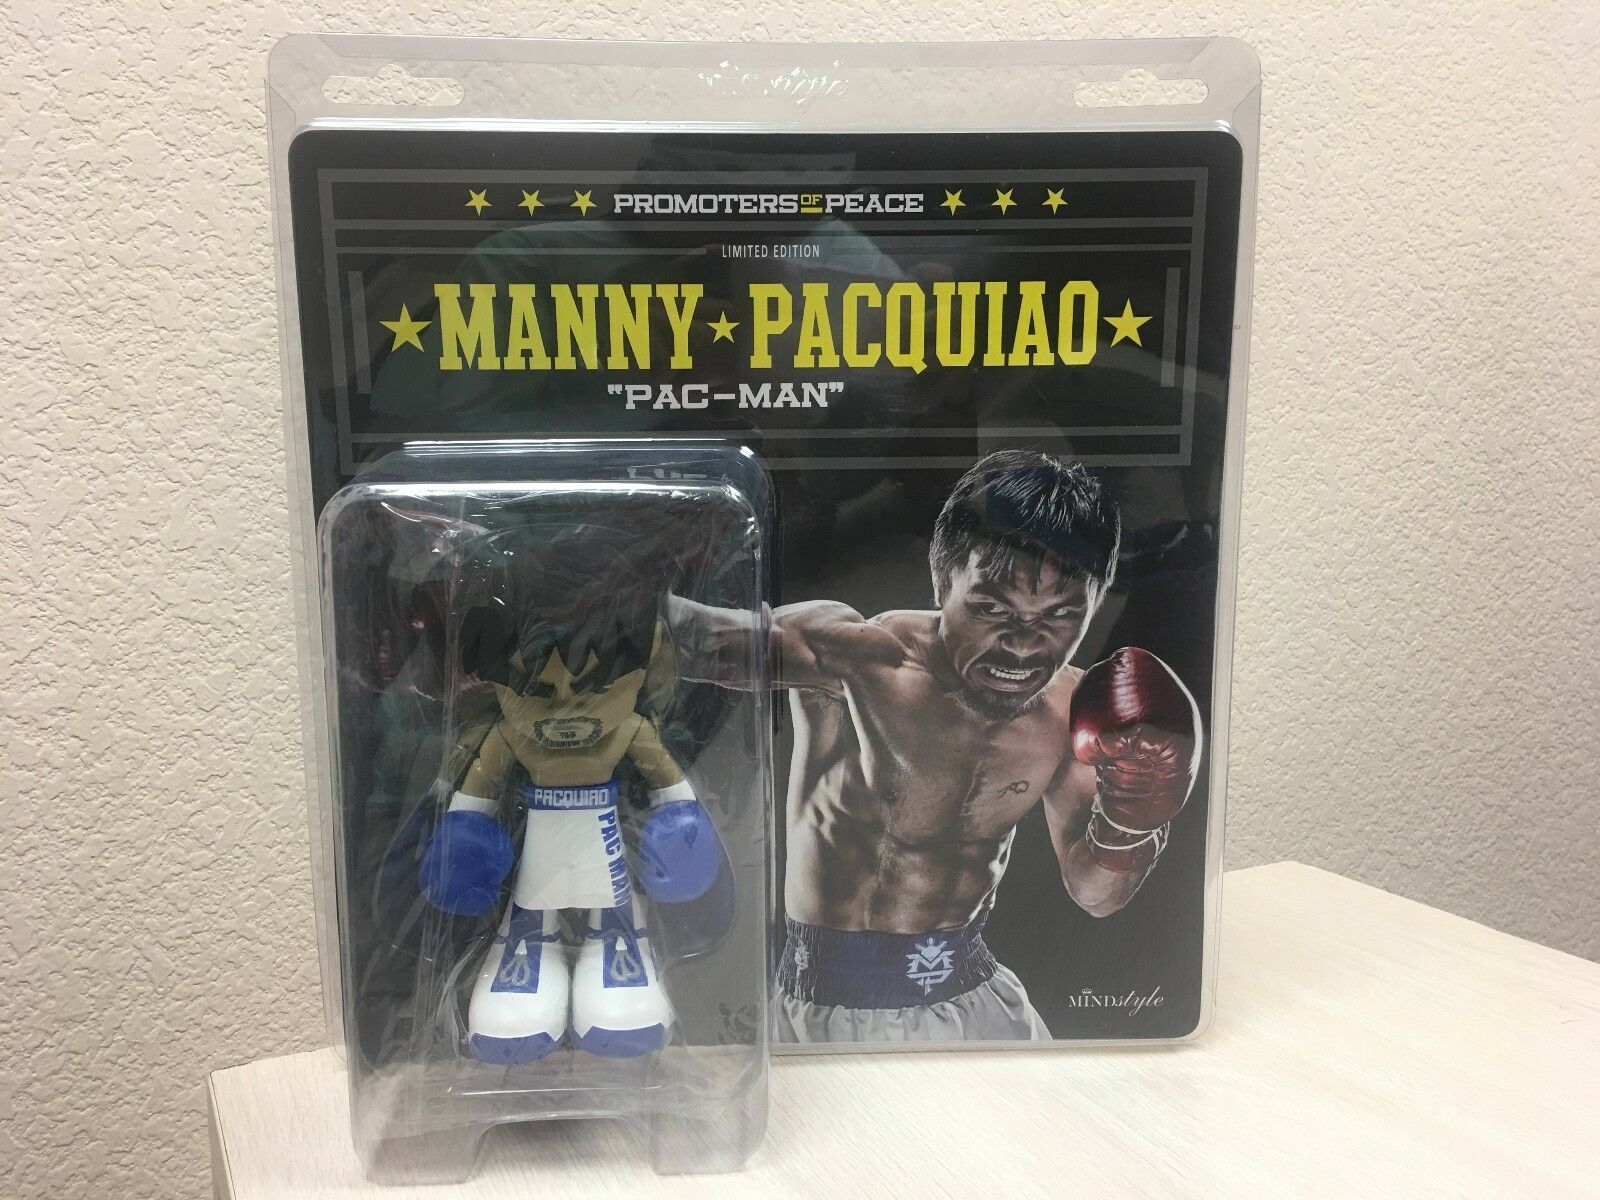 Promoters Peace MANNY PACQUIAO Pac-Man Mindstyle Blau Weiß Original 7